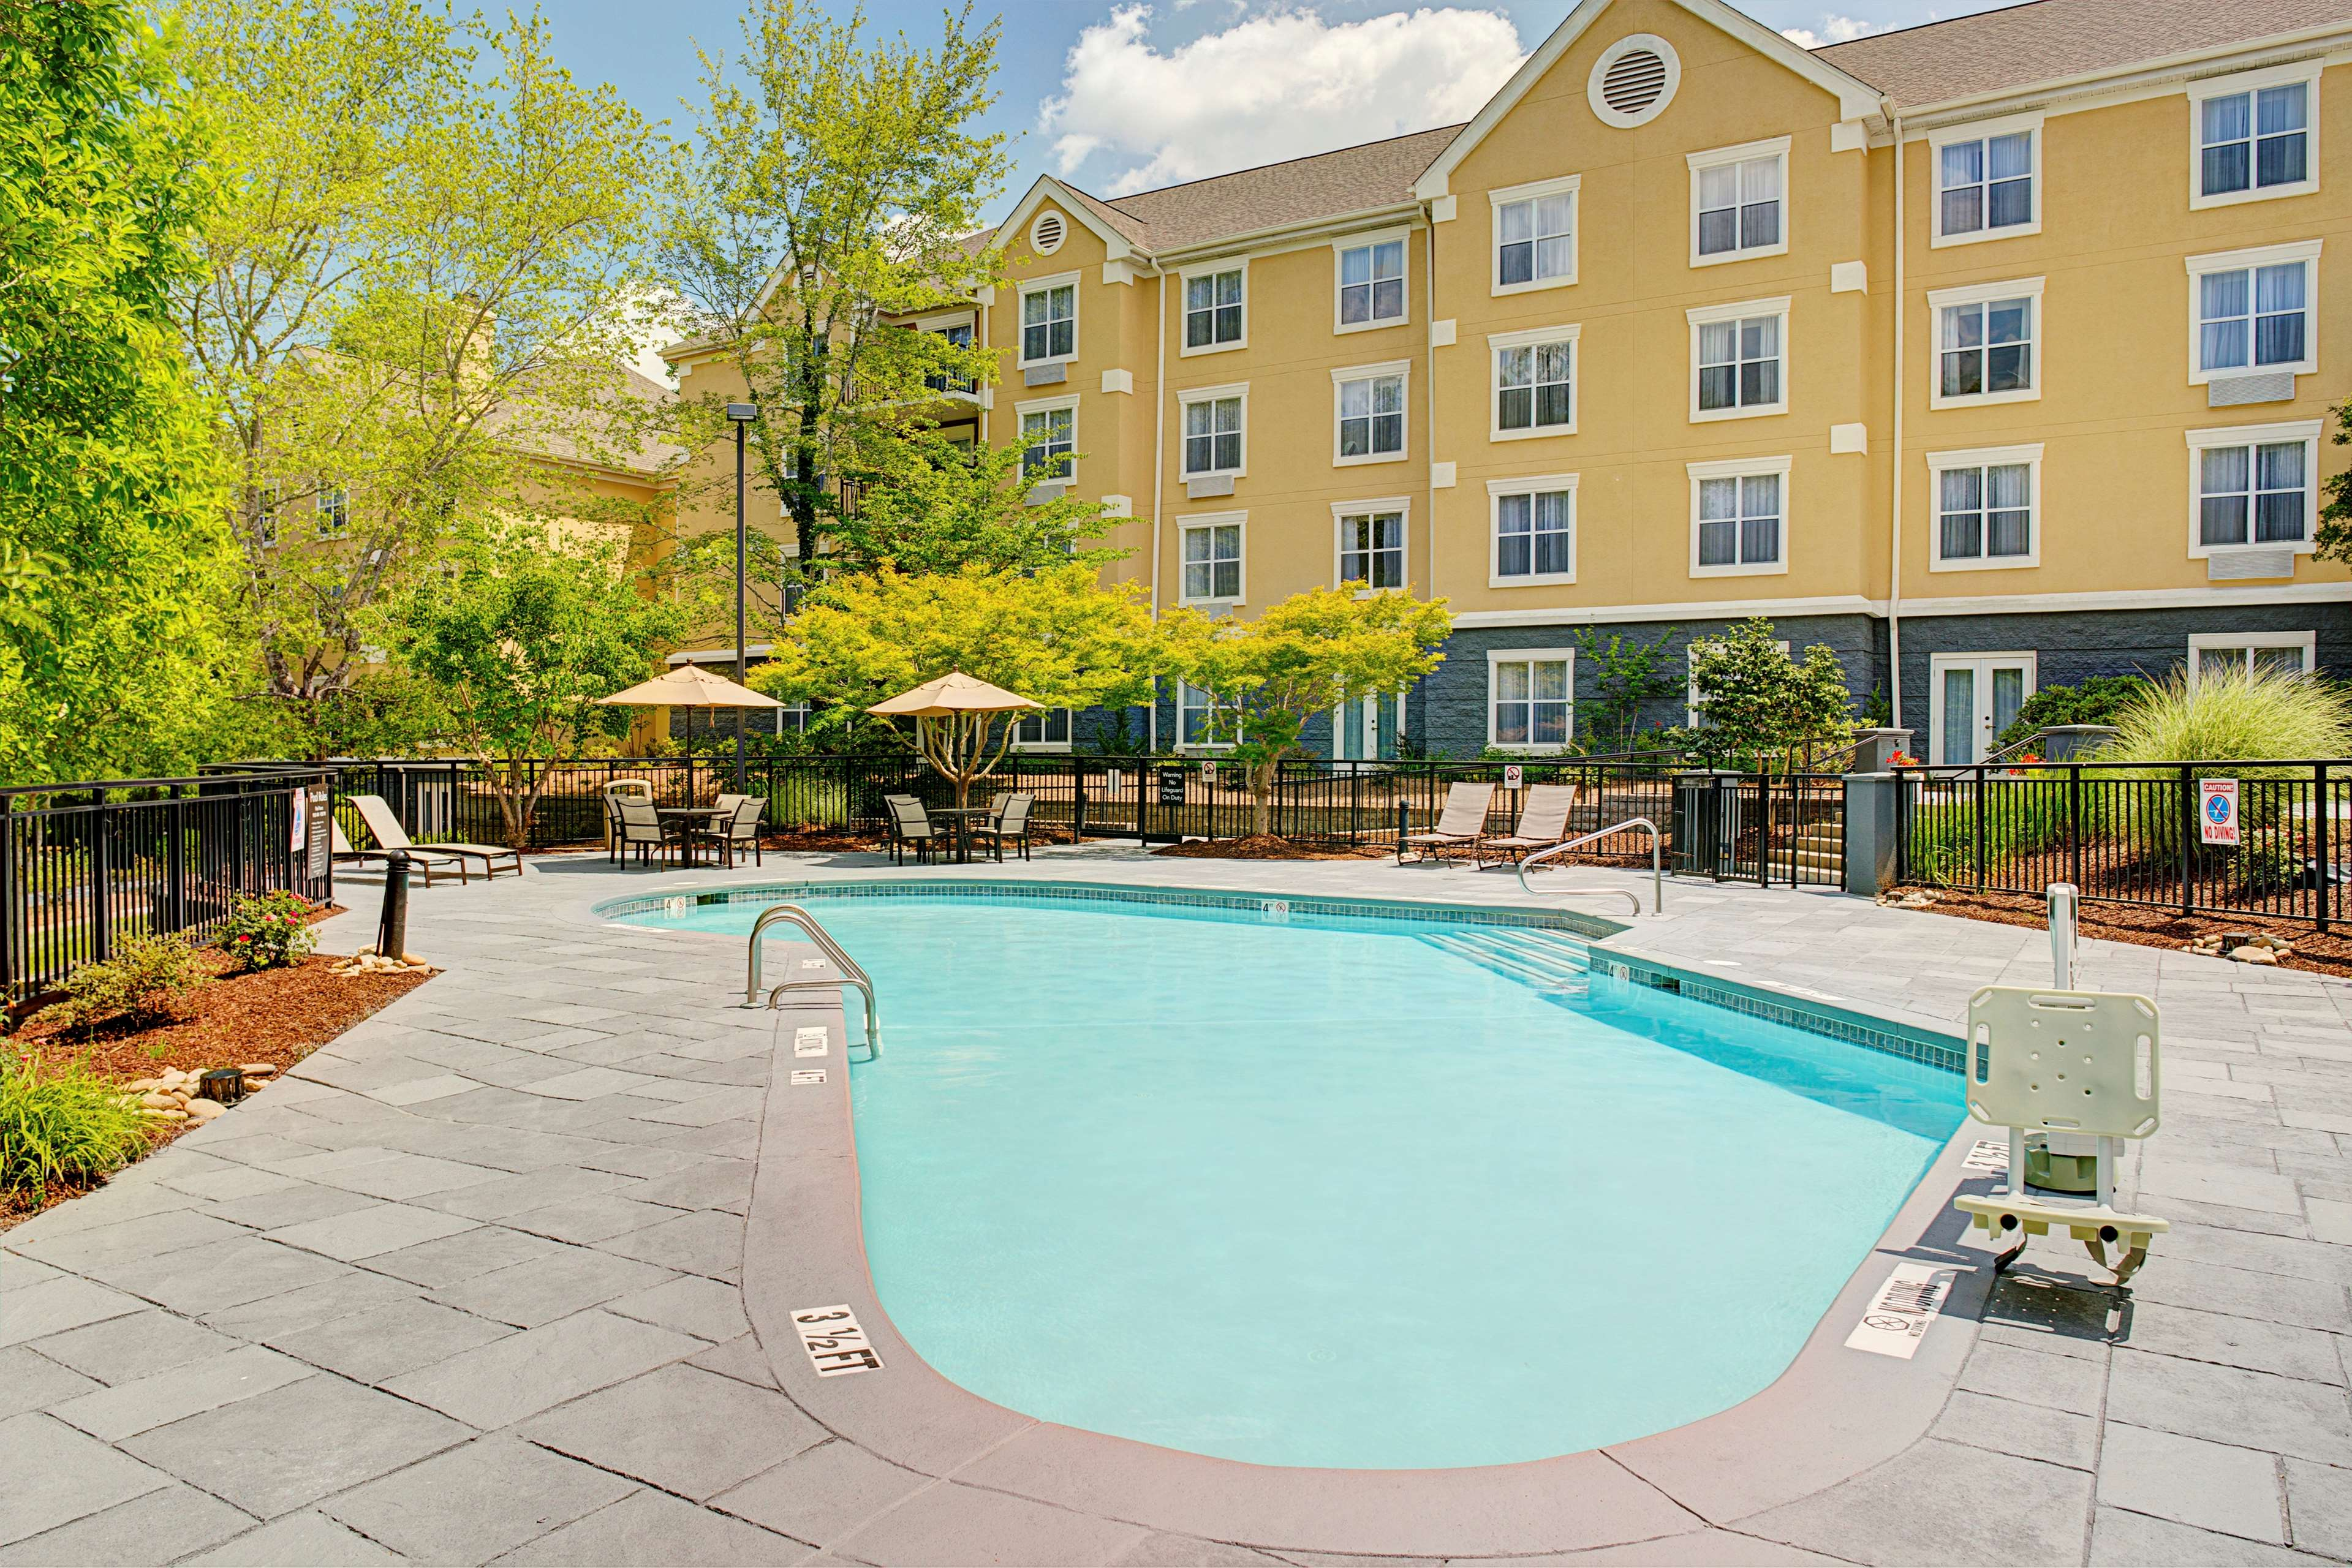 Homewood Suites by Hilton Raleigh/Cary image 16